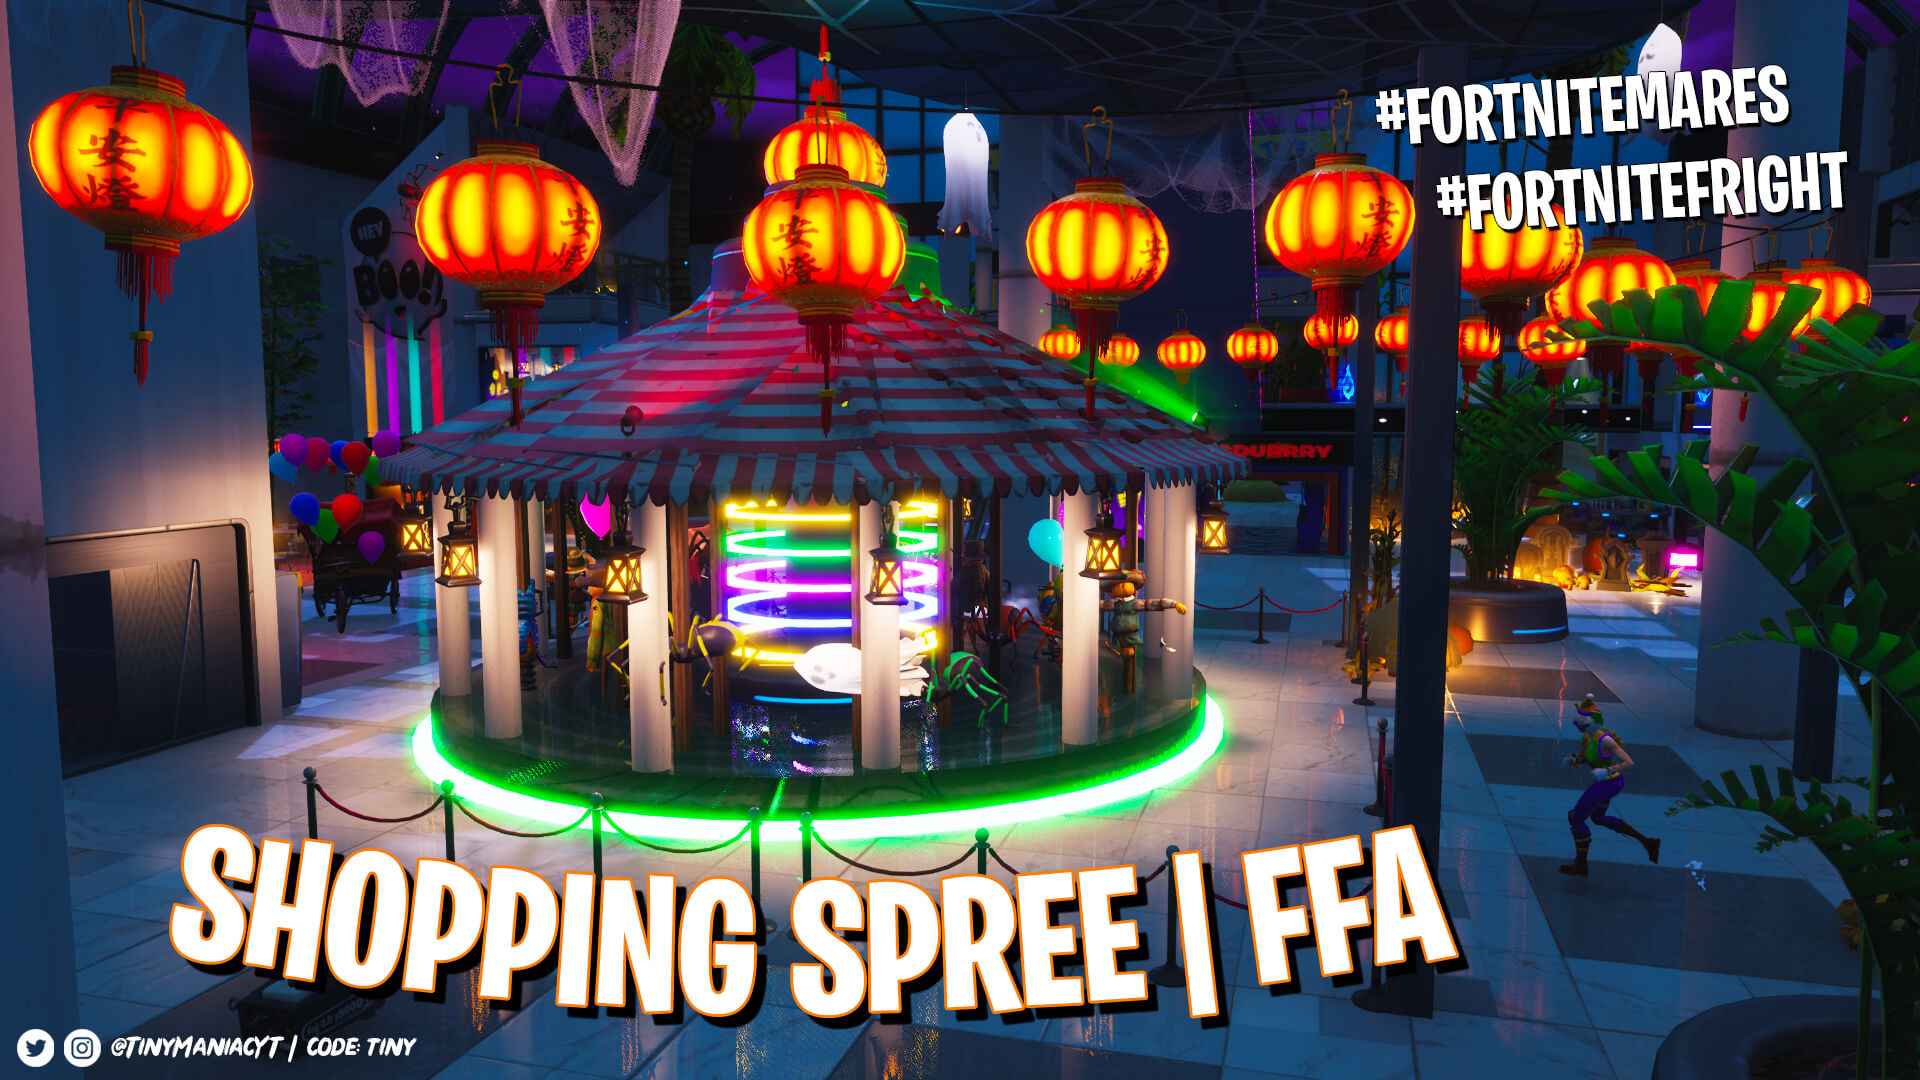 SHOPPING SPREE | FFA